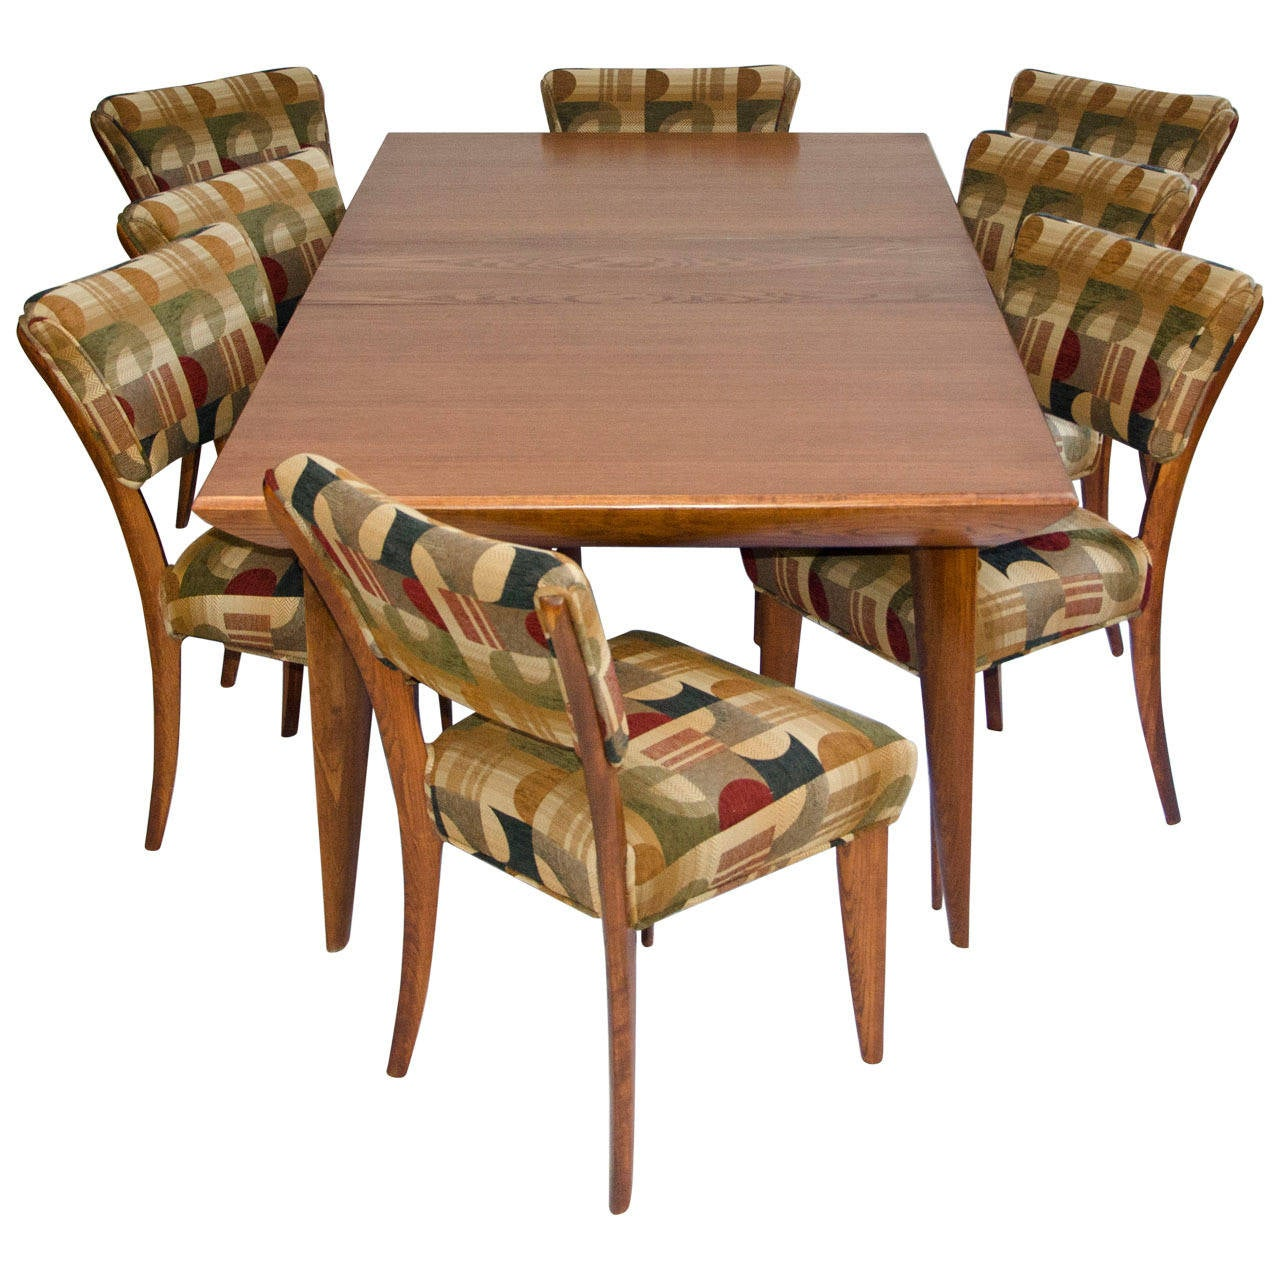 Mid Century Dining Room Table And Chairs By Paul Laszlo For Brown Saltman 1